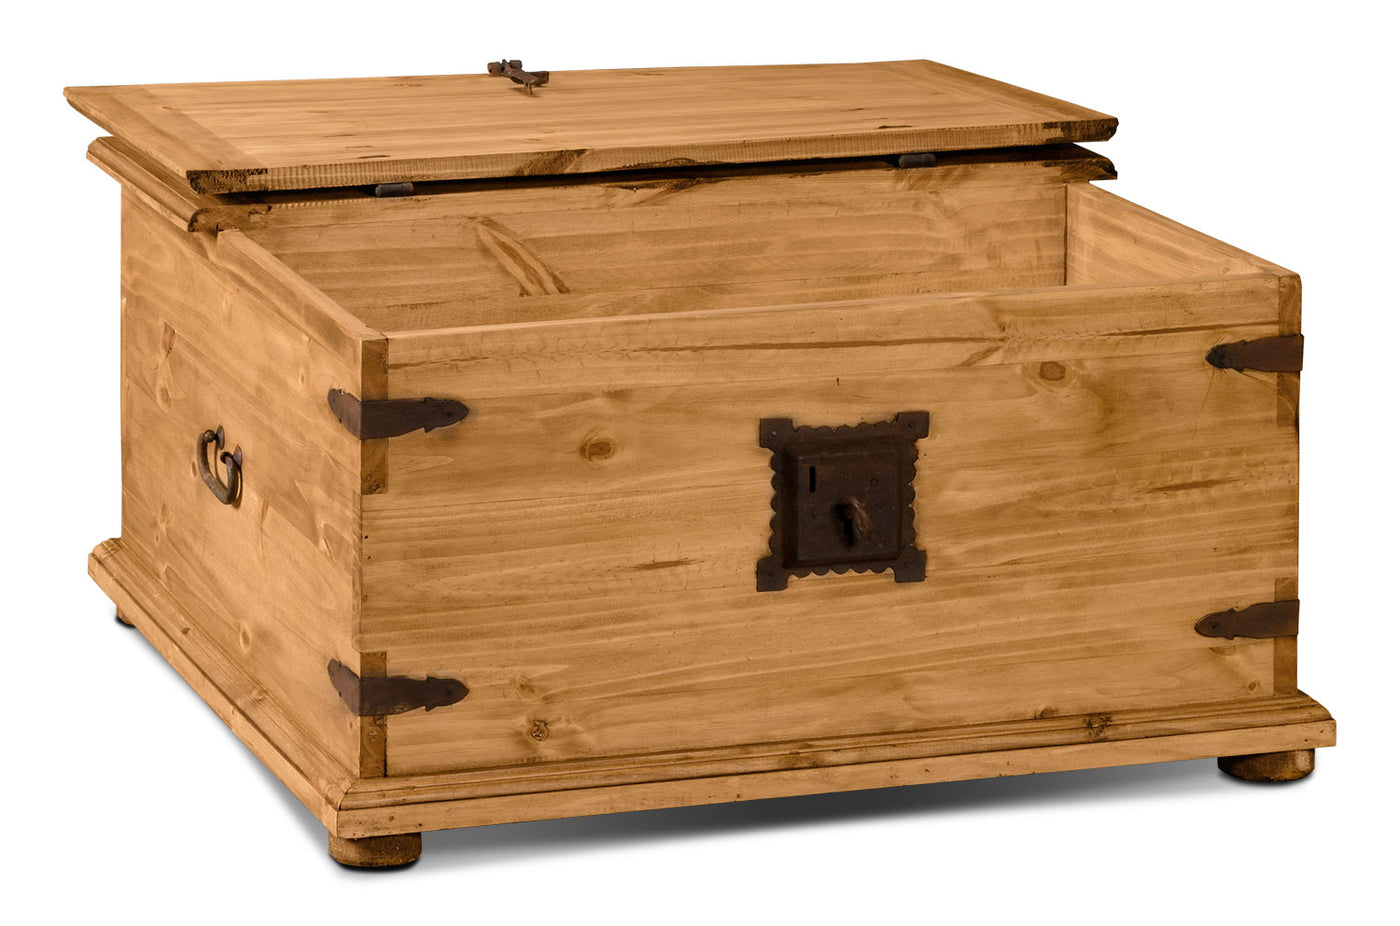 - Santa Fe Rusticos Solid Pine Trunk-Style Coffee Table With Storage